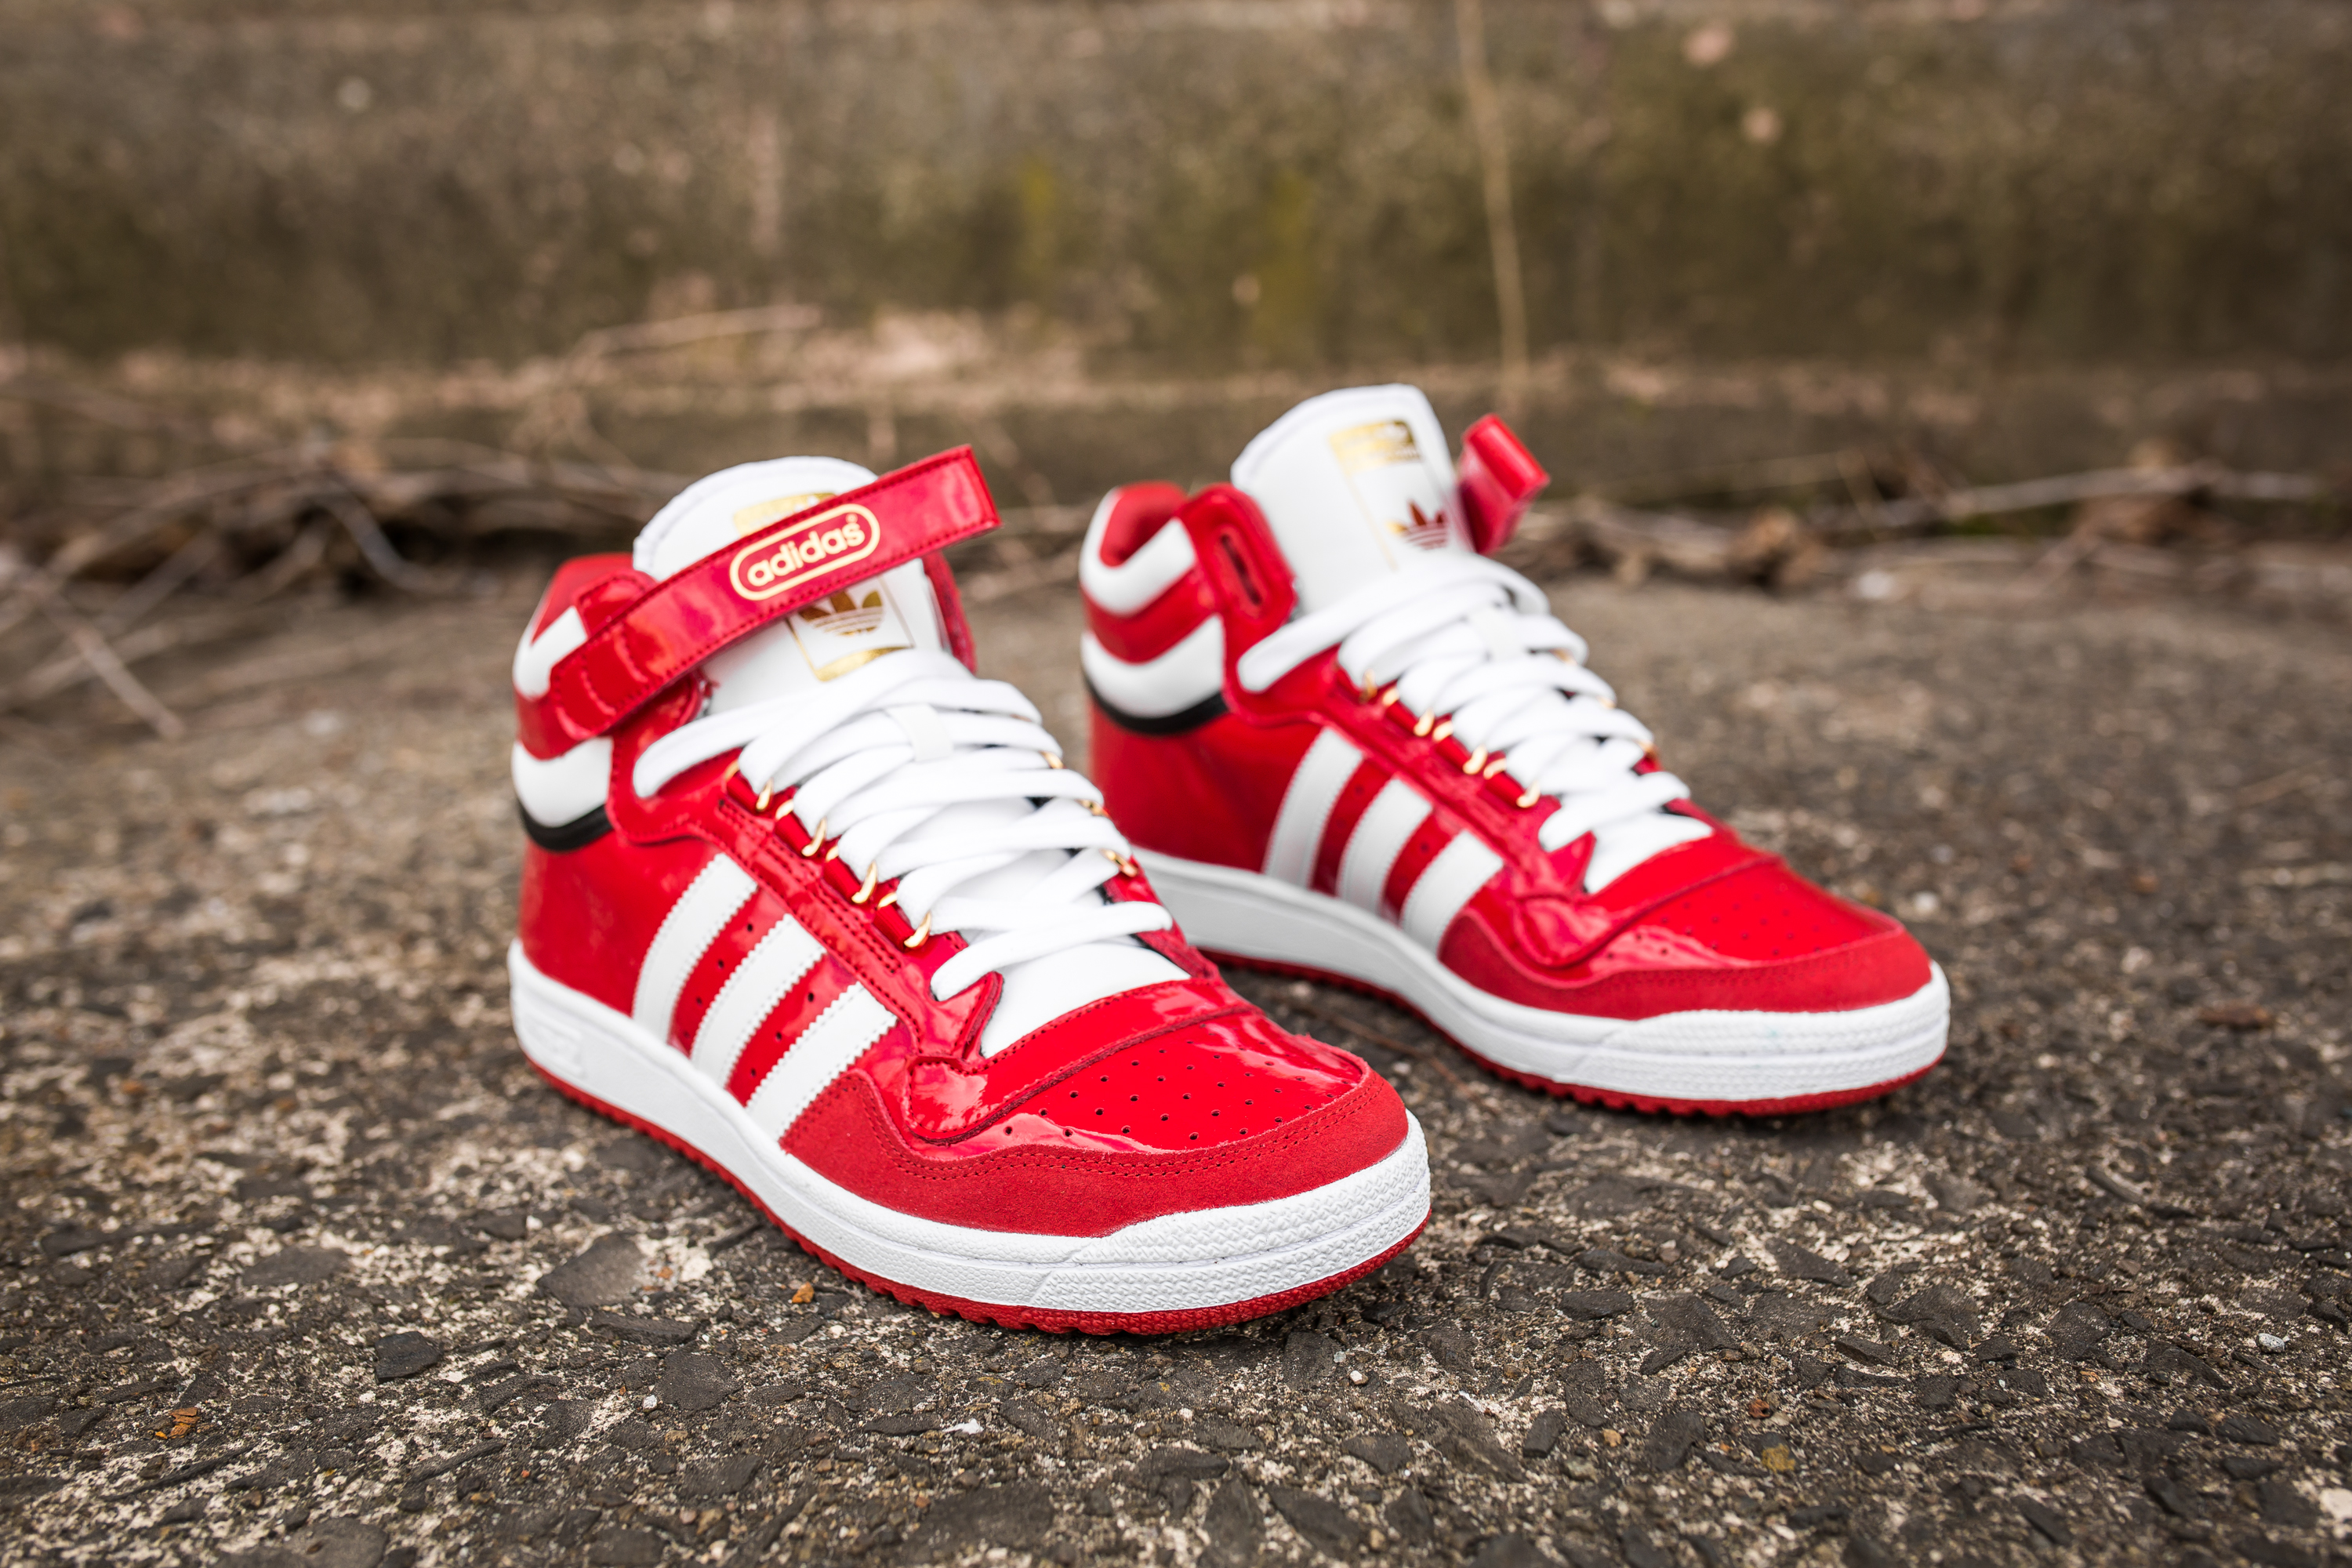 adidas concord ii mid red TRDYHGO